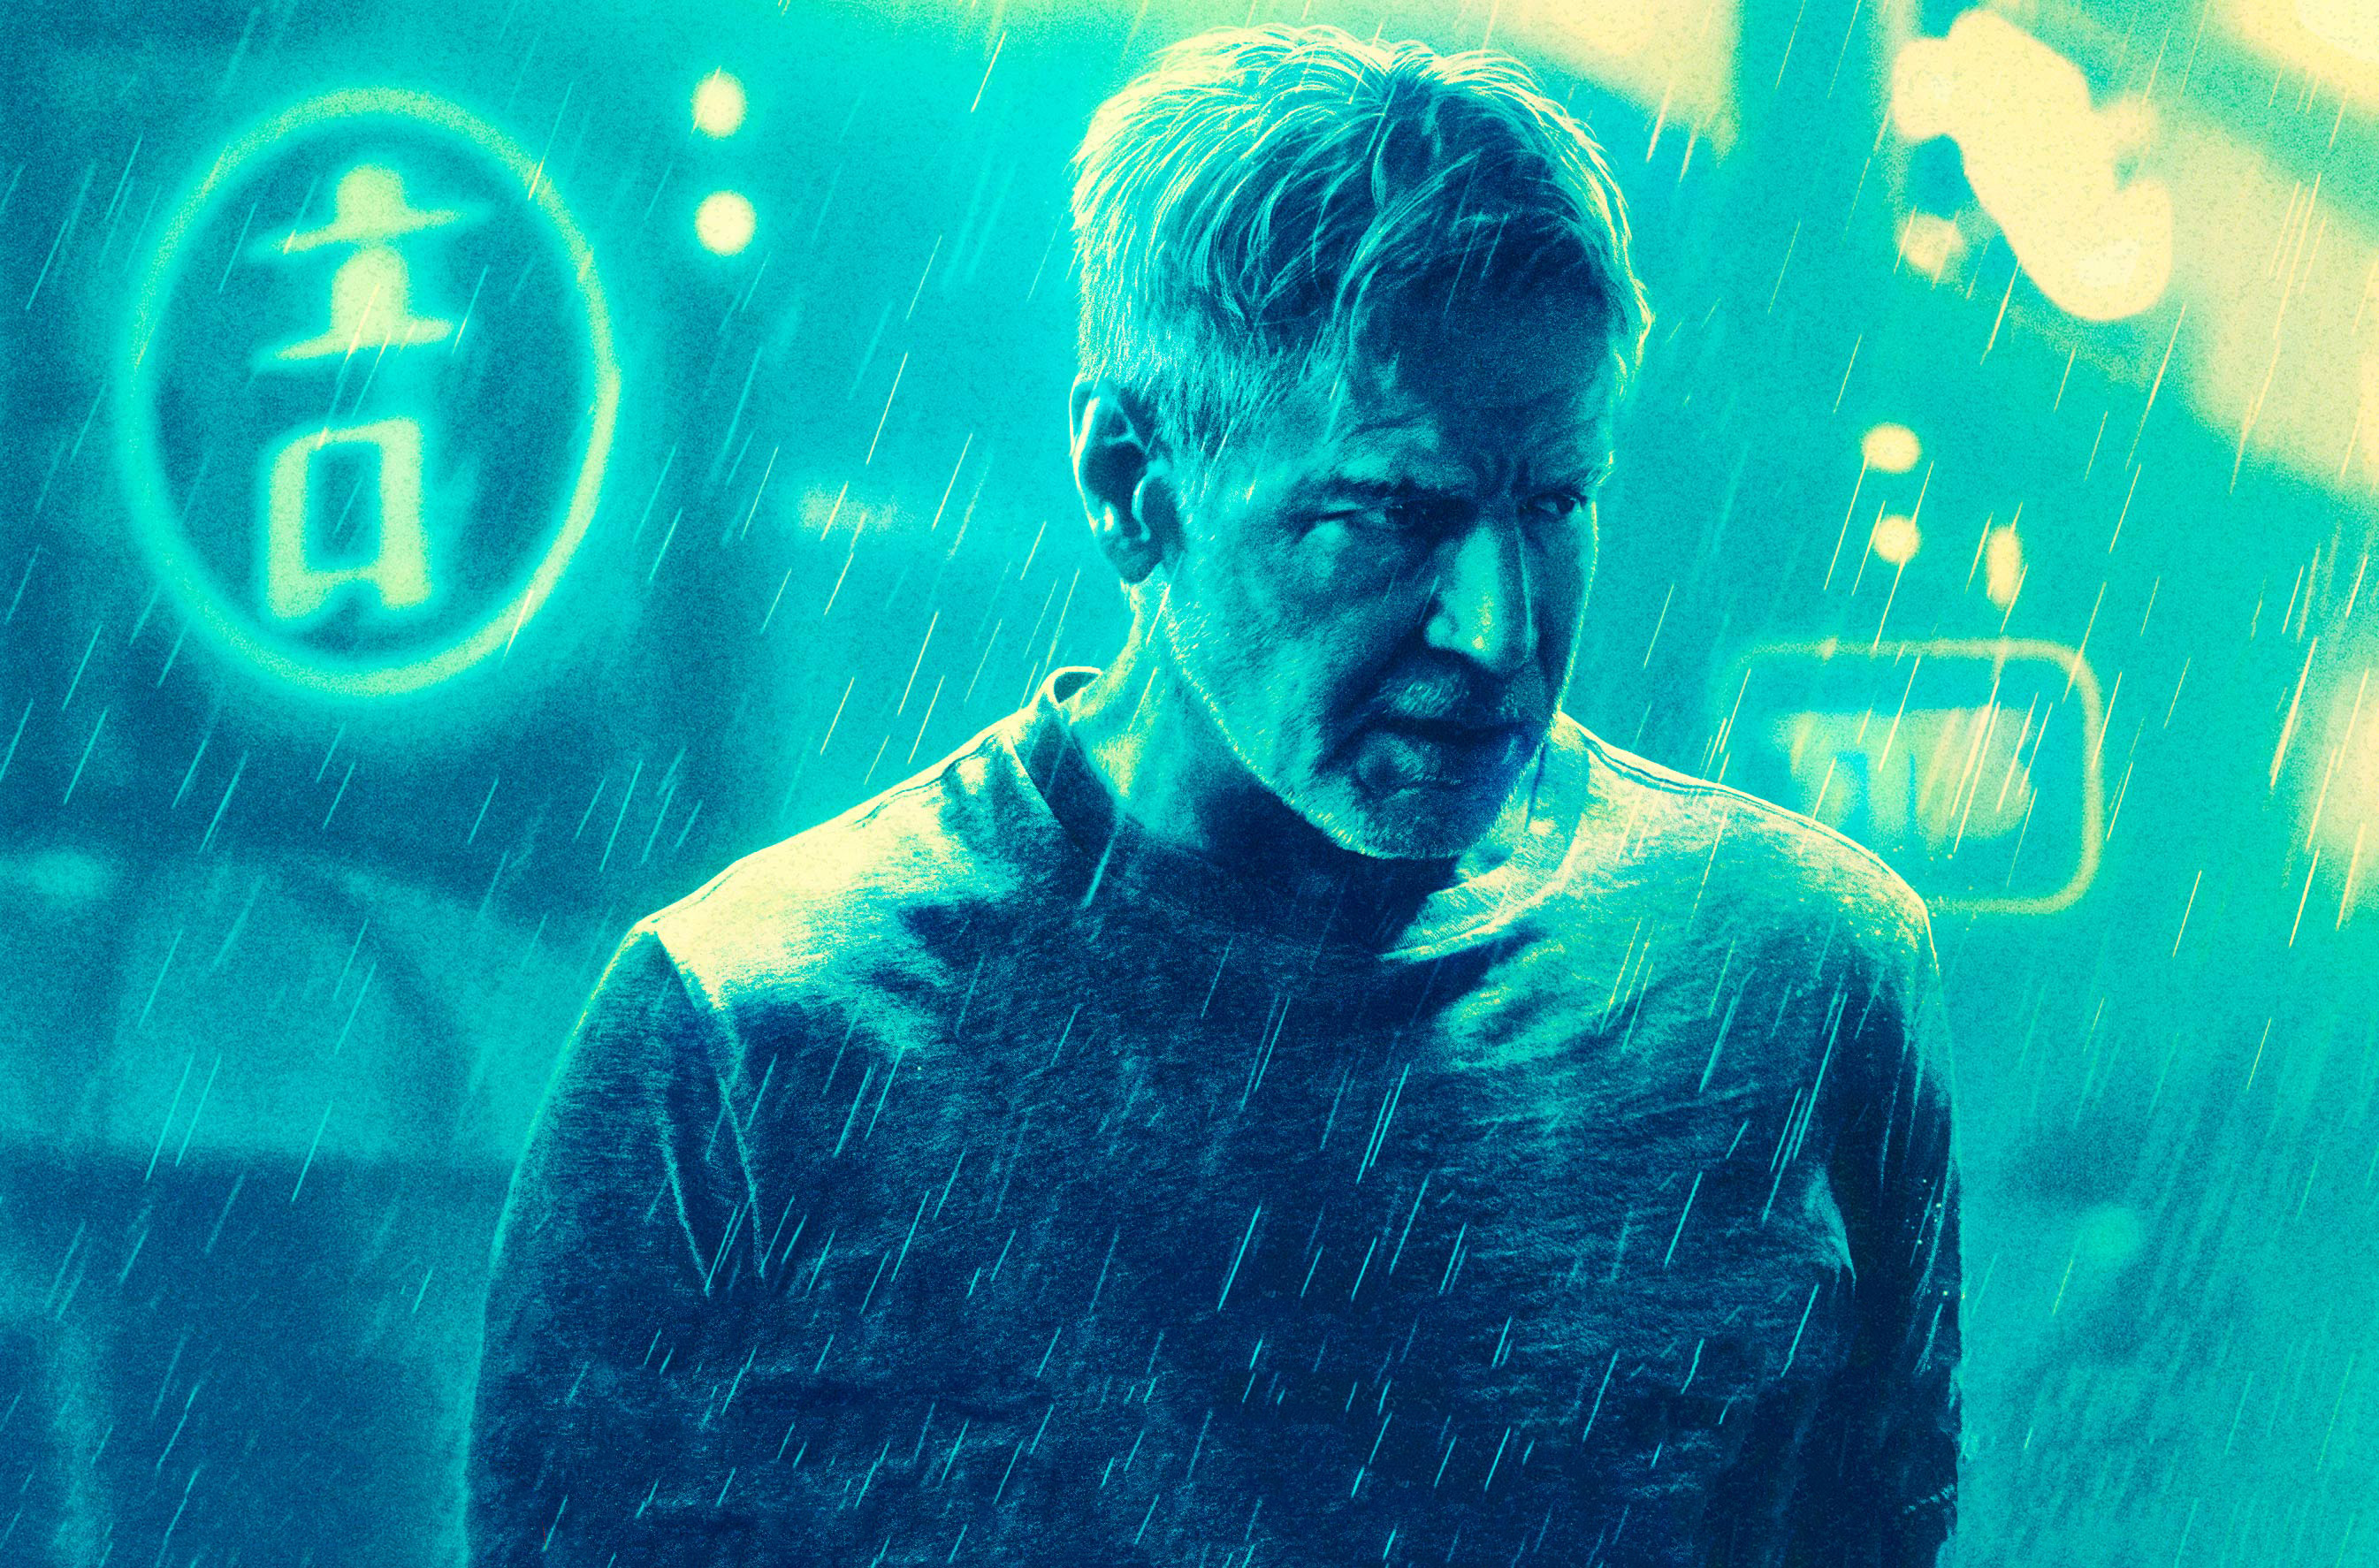 Harrison Ford Blade Runner 2049, HD Movies, 4k Wallpapers